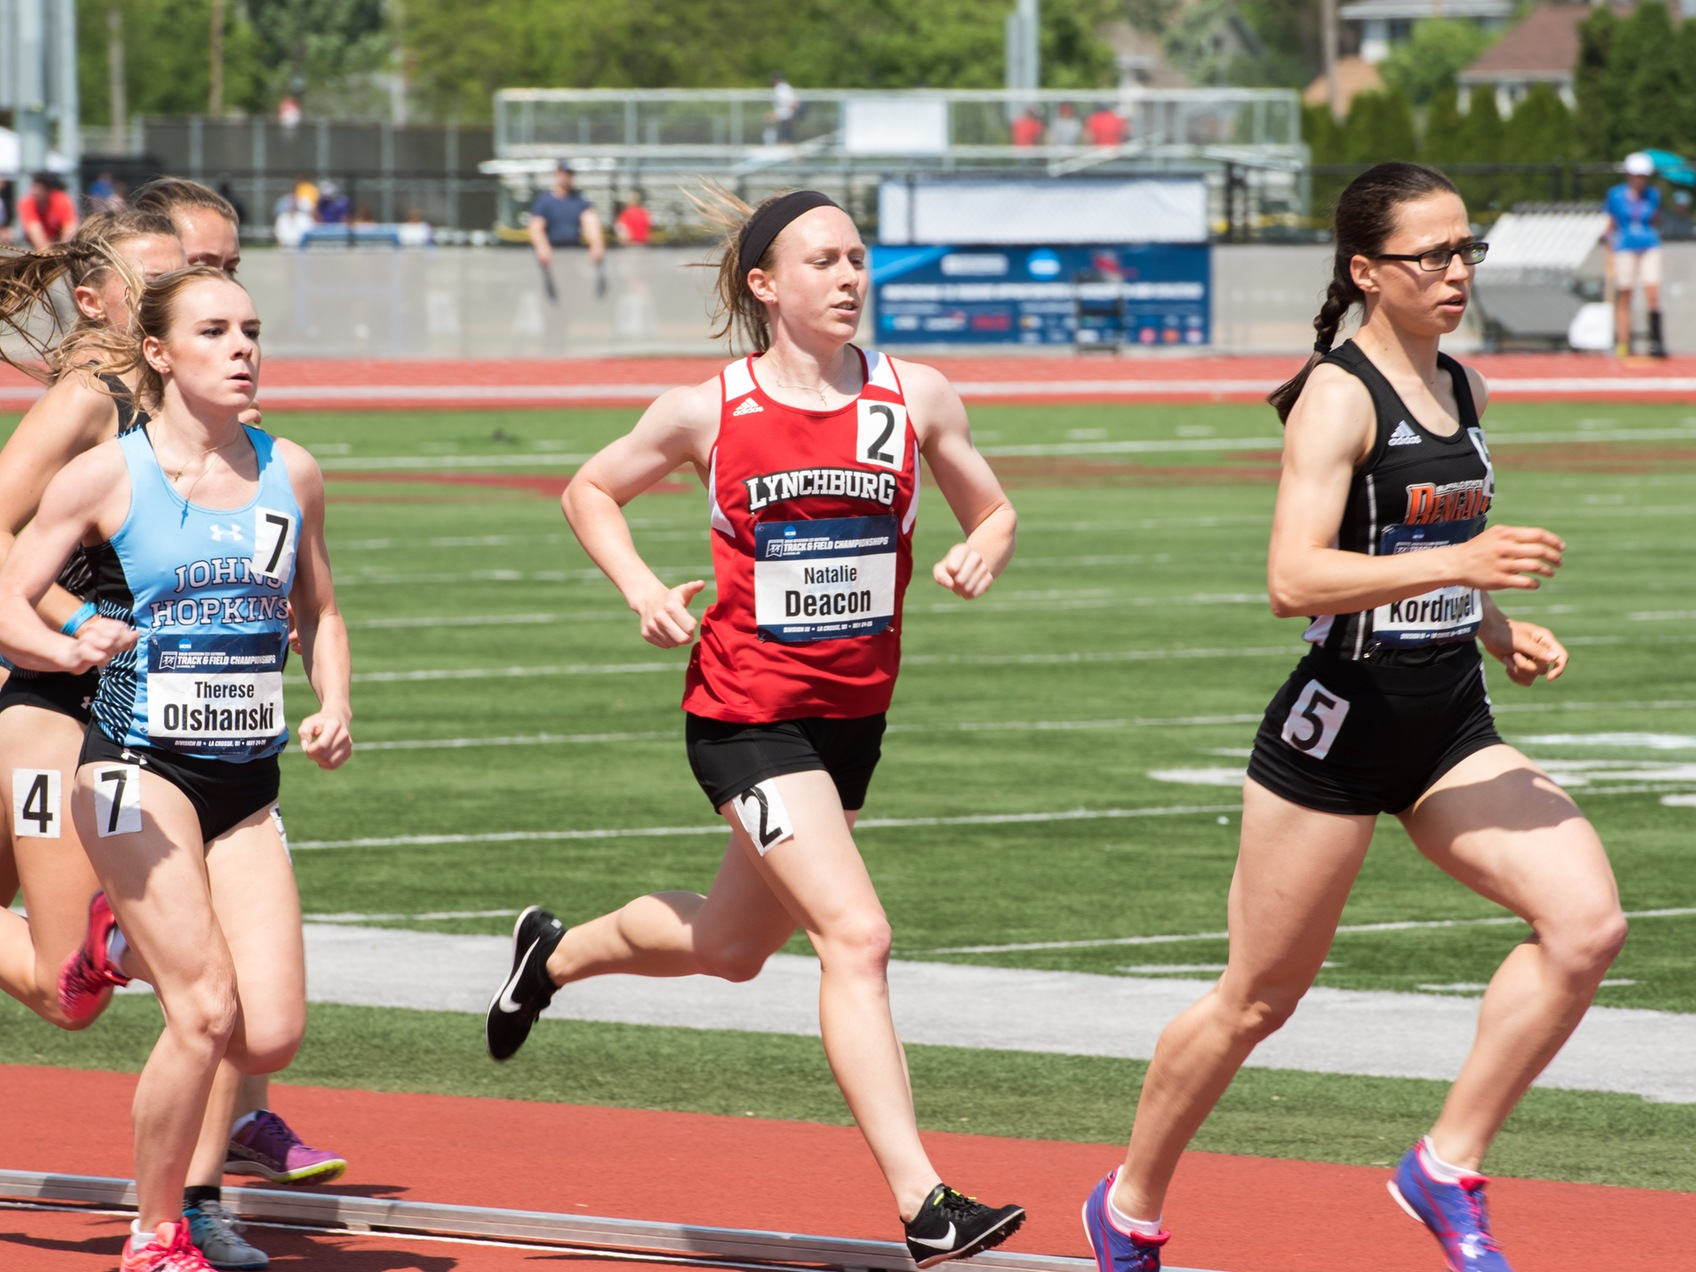 Natalie Deacon runs in the 1,500m at outdoor nationals.